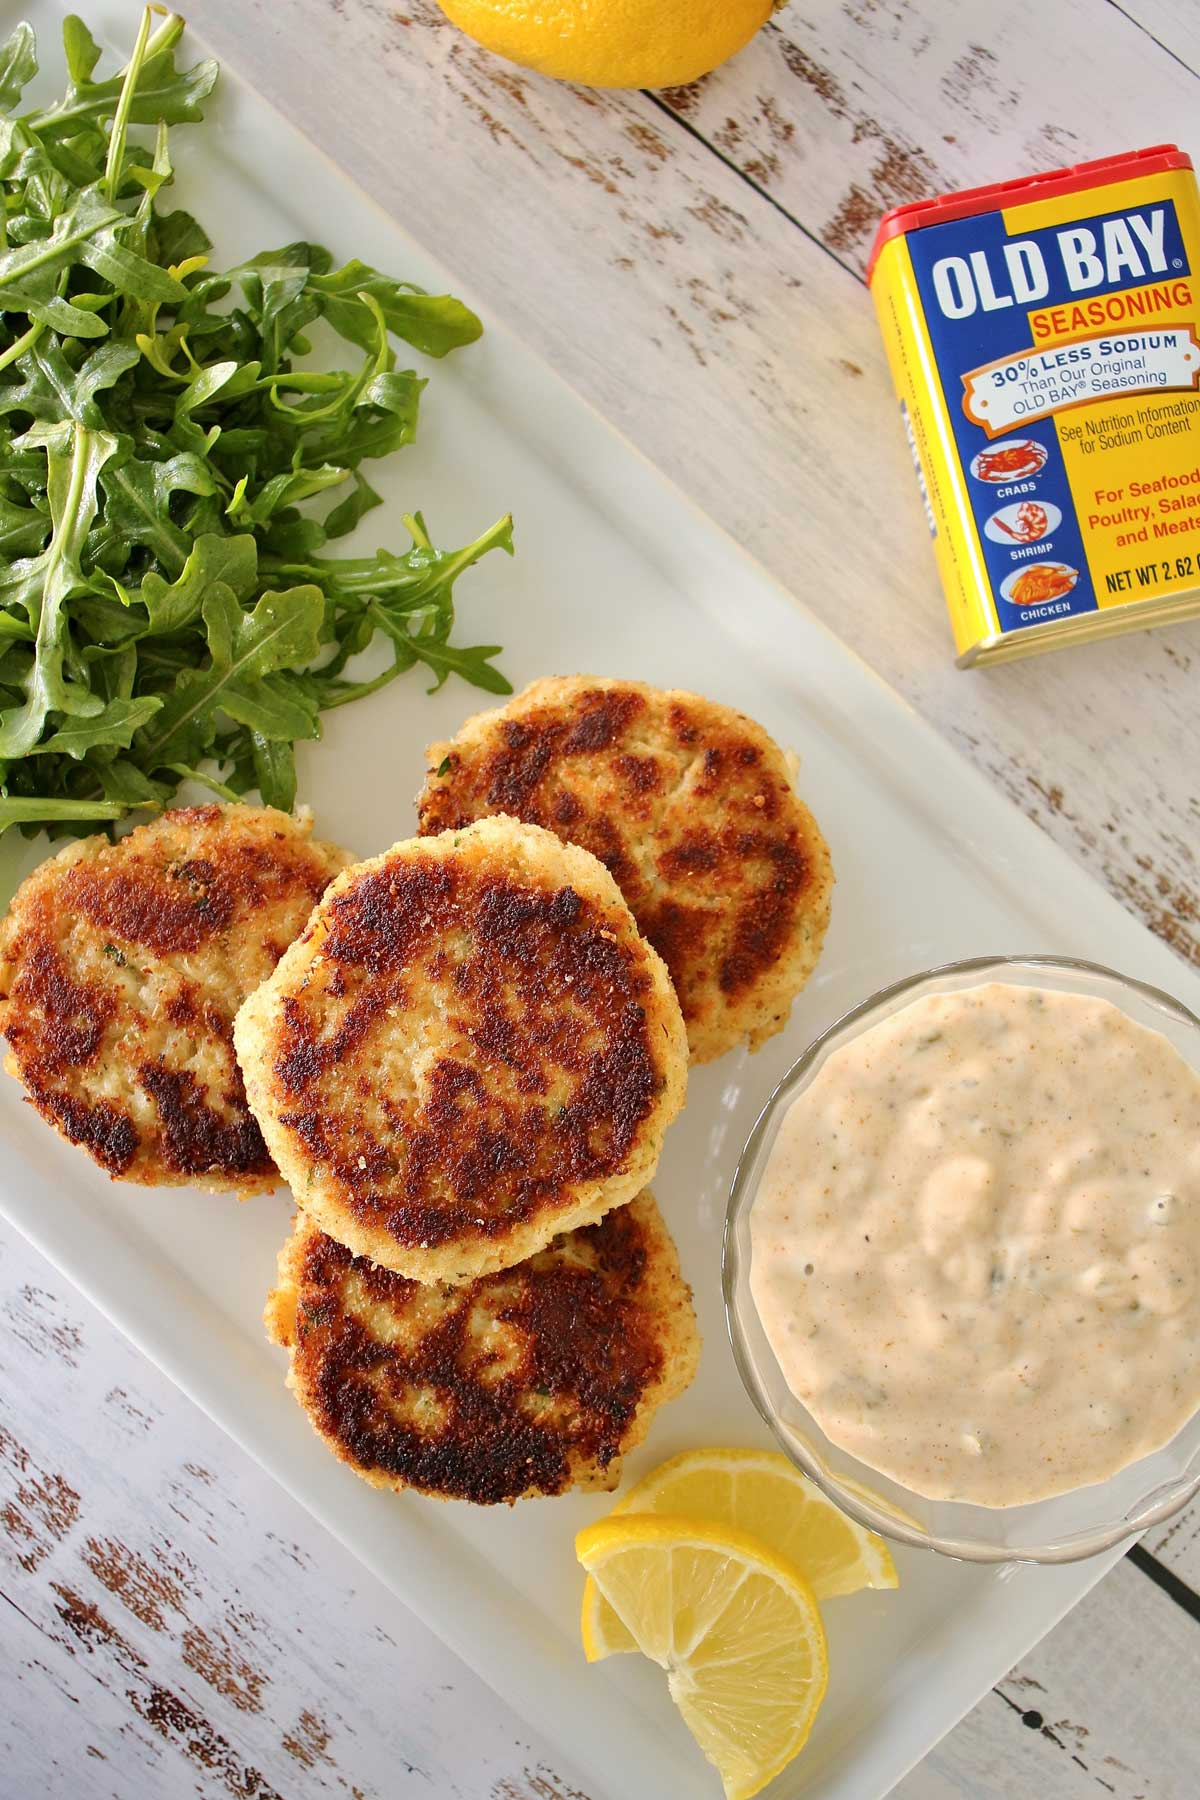 Four golden crab cakes on a white plate a bowl of sauce on one side, and an arugula salad on the other. A can of Old Bay Seasoning and a lemon are on the table next to it.